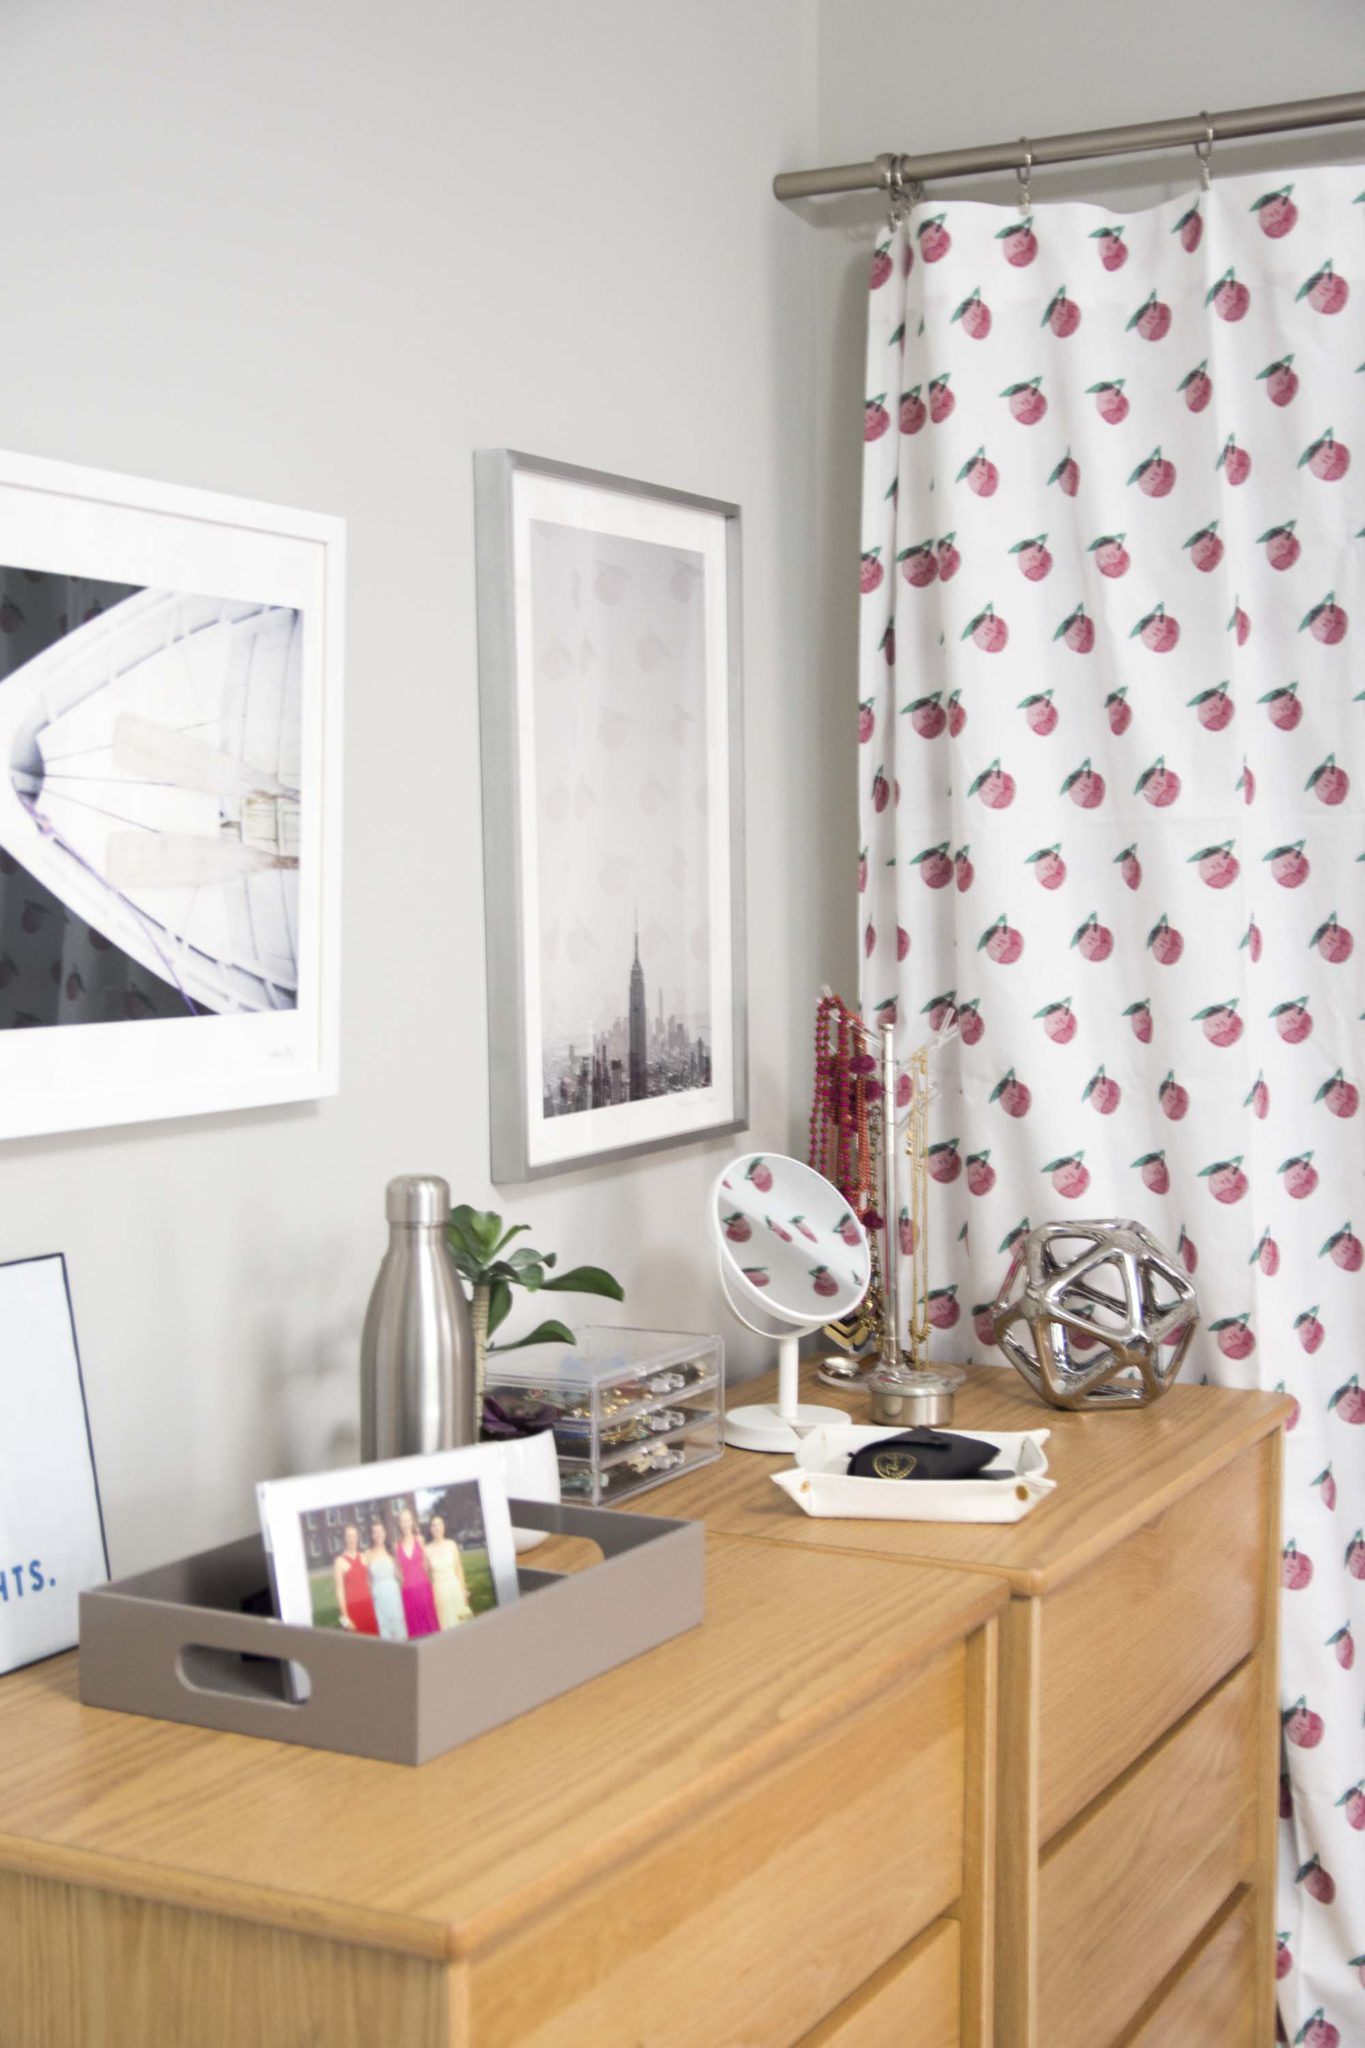 Dorm room design with curtains covering closet and dresser decor on Thou Swell @thouswellblog